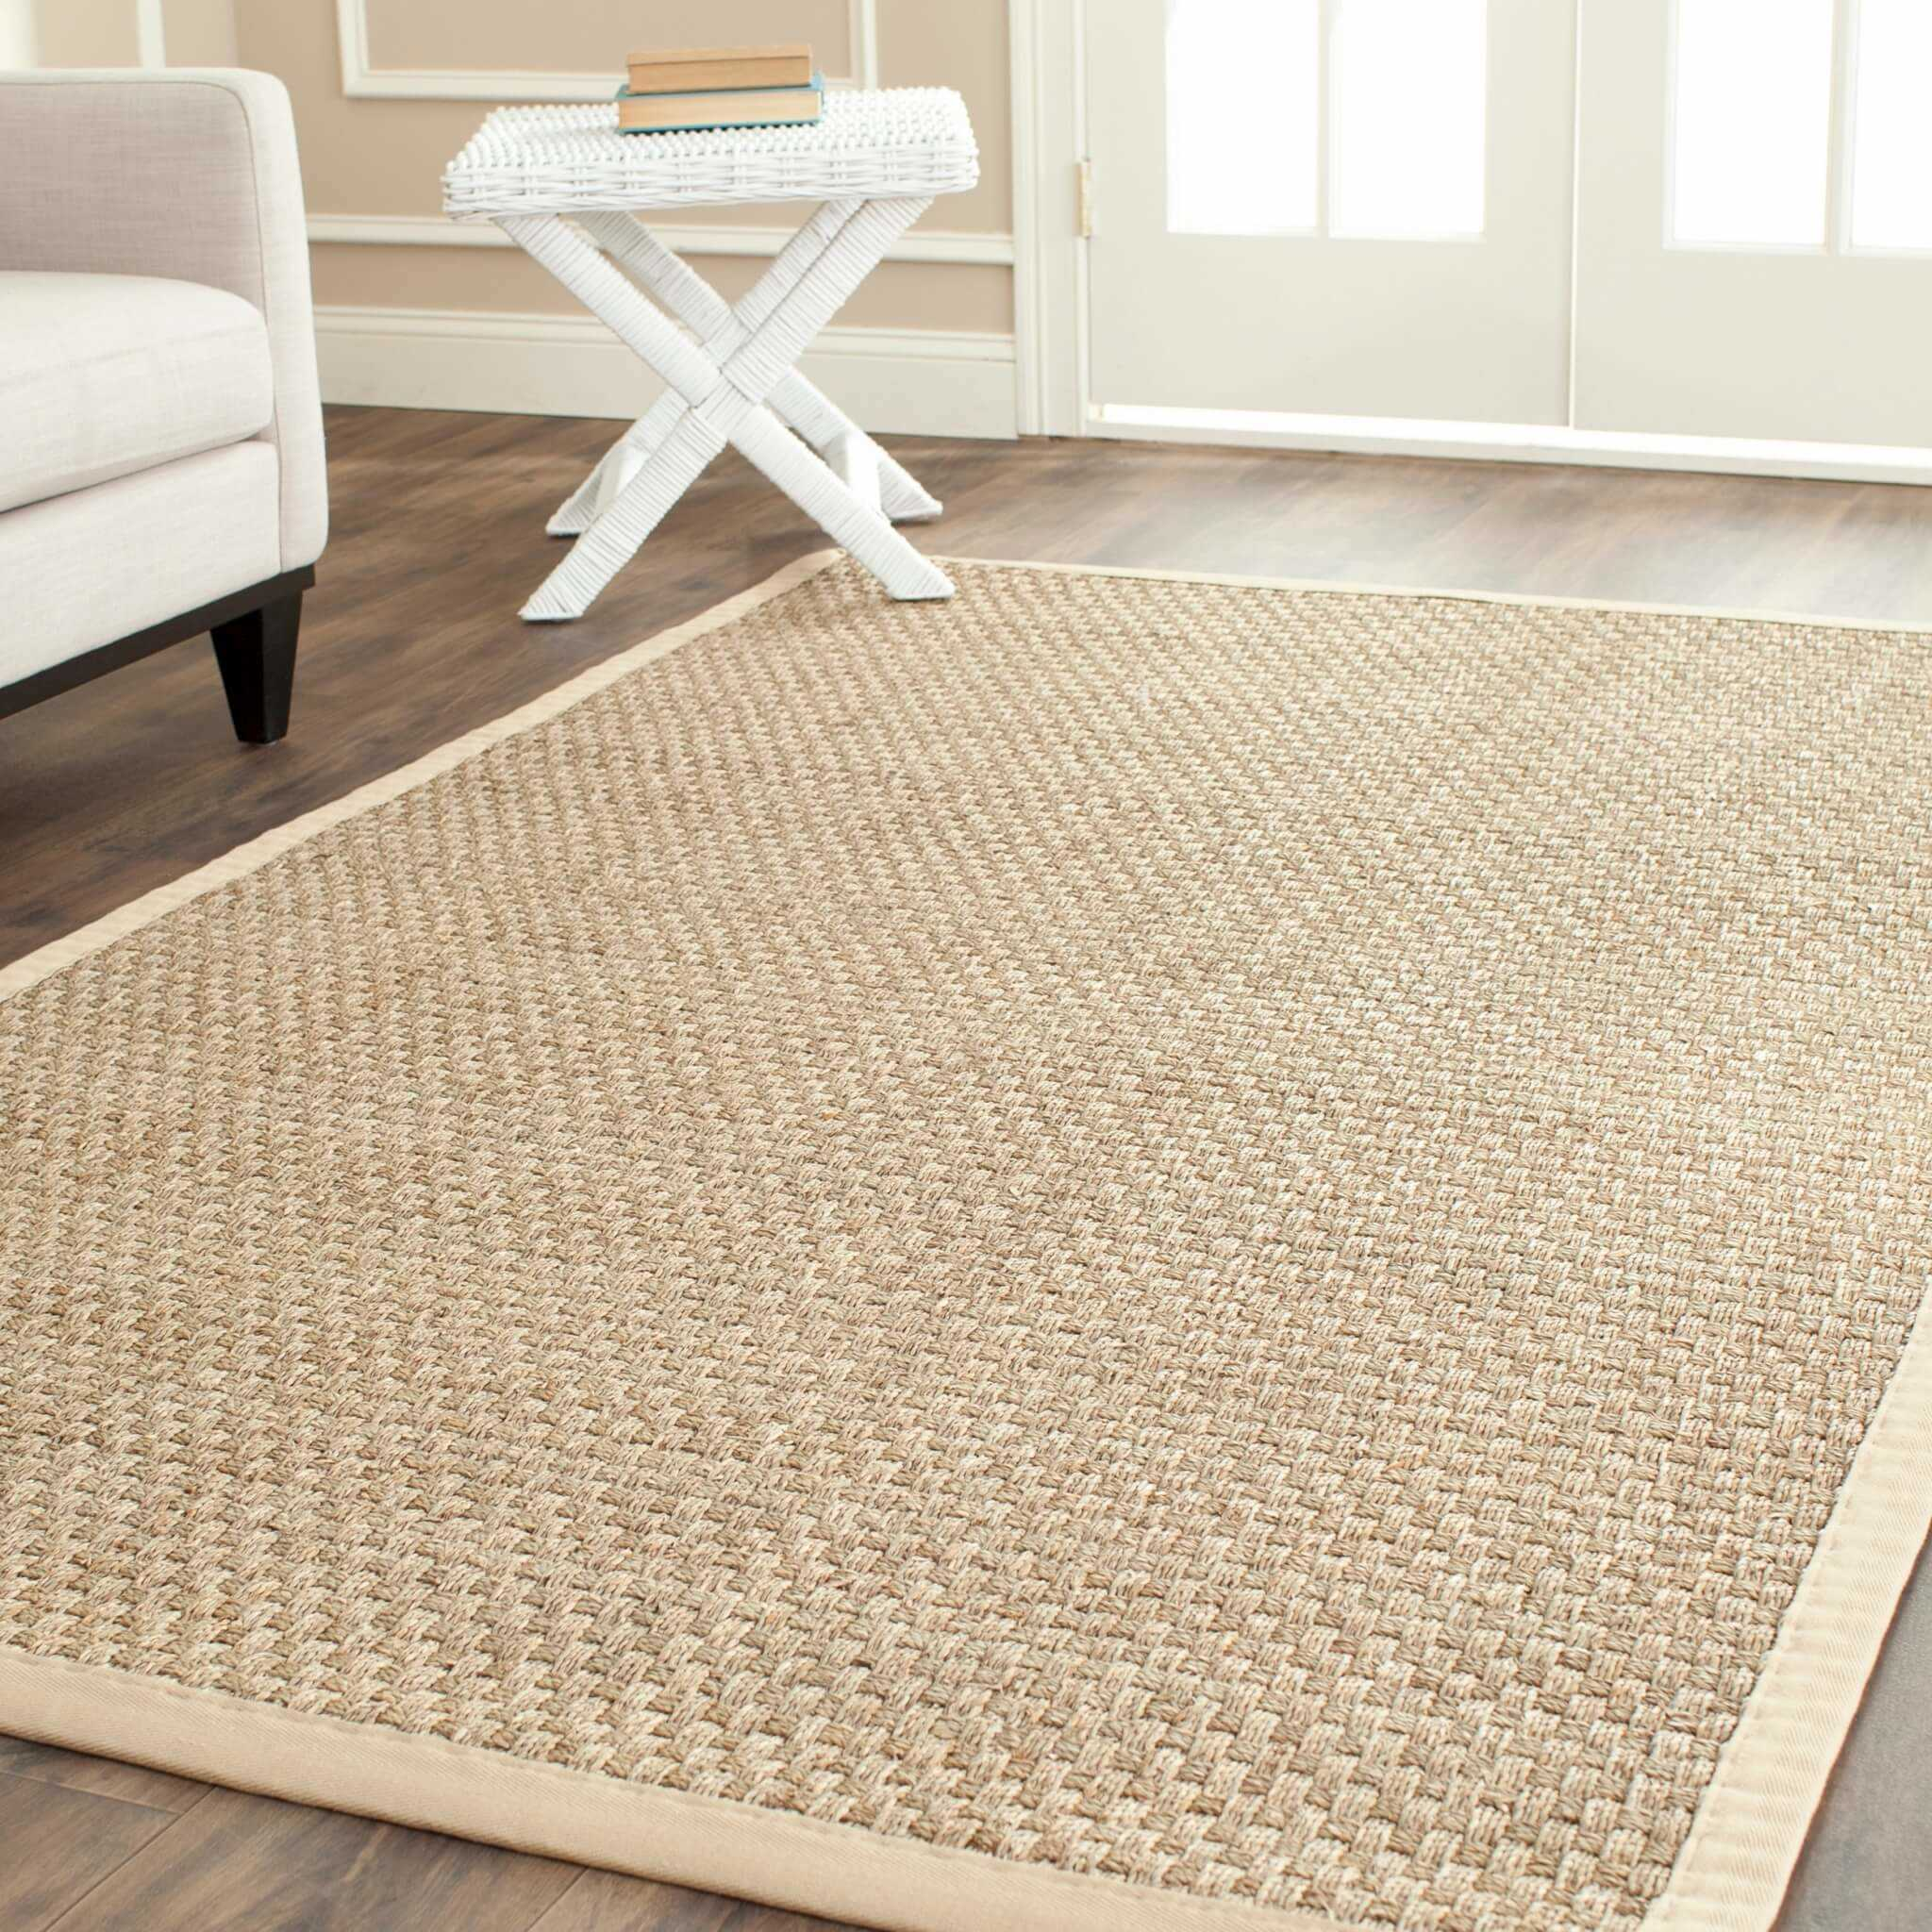 Ikea Teppich Off White Carpets - Rugs - Natural Flooring - Cape Town Carpet Fitters